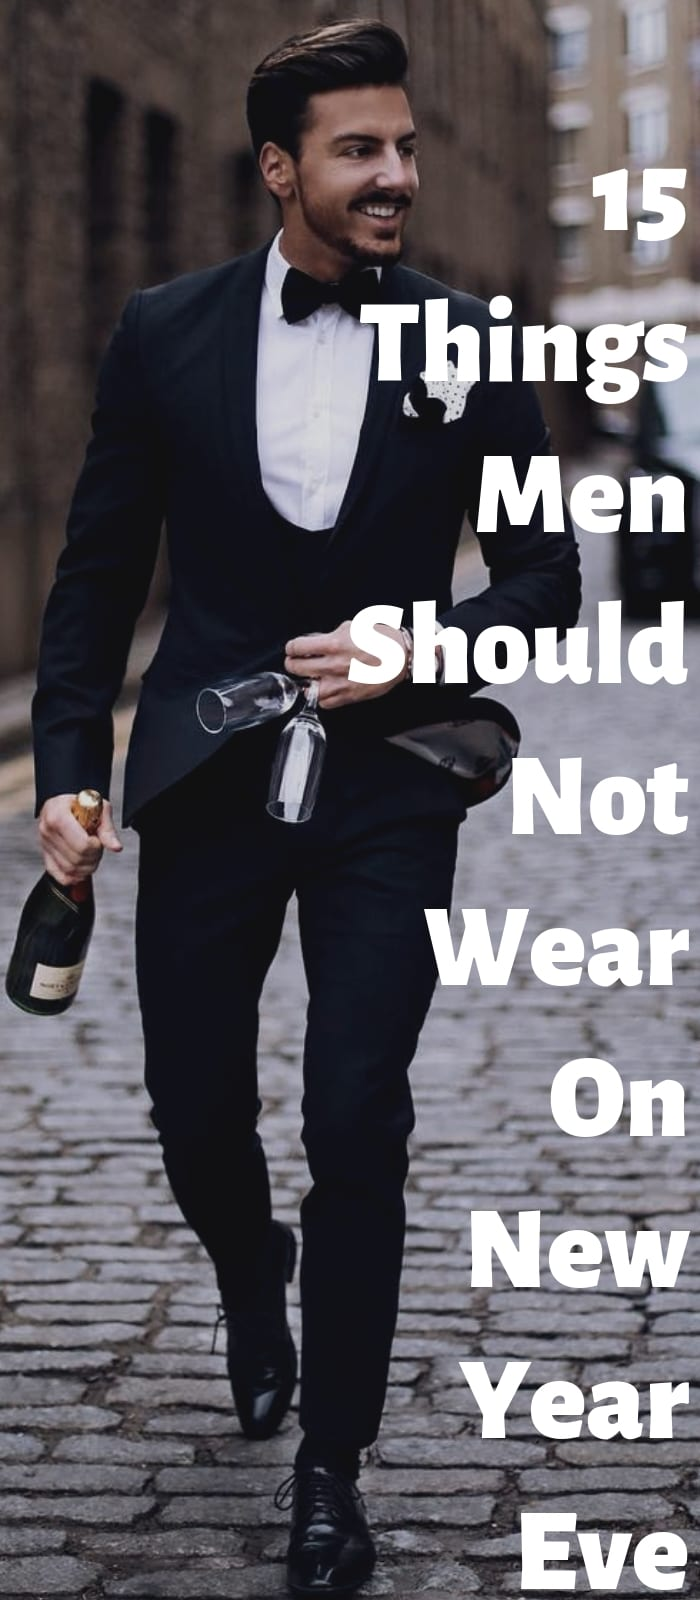 15 Things Men Should Not Wear On New Year Eve.